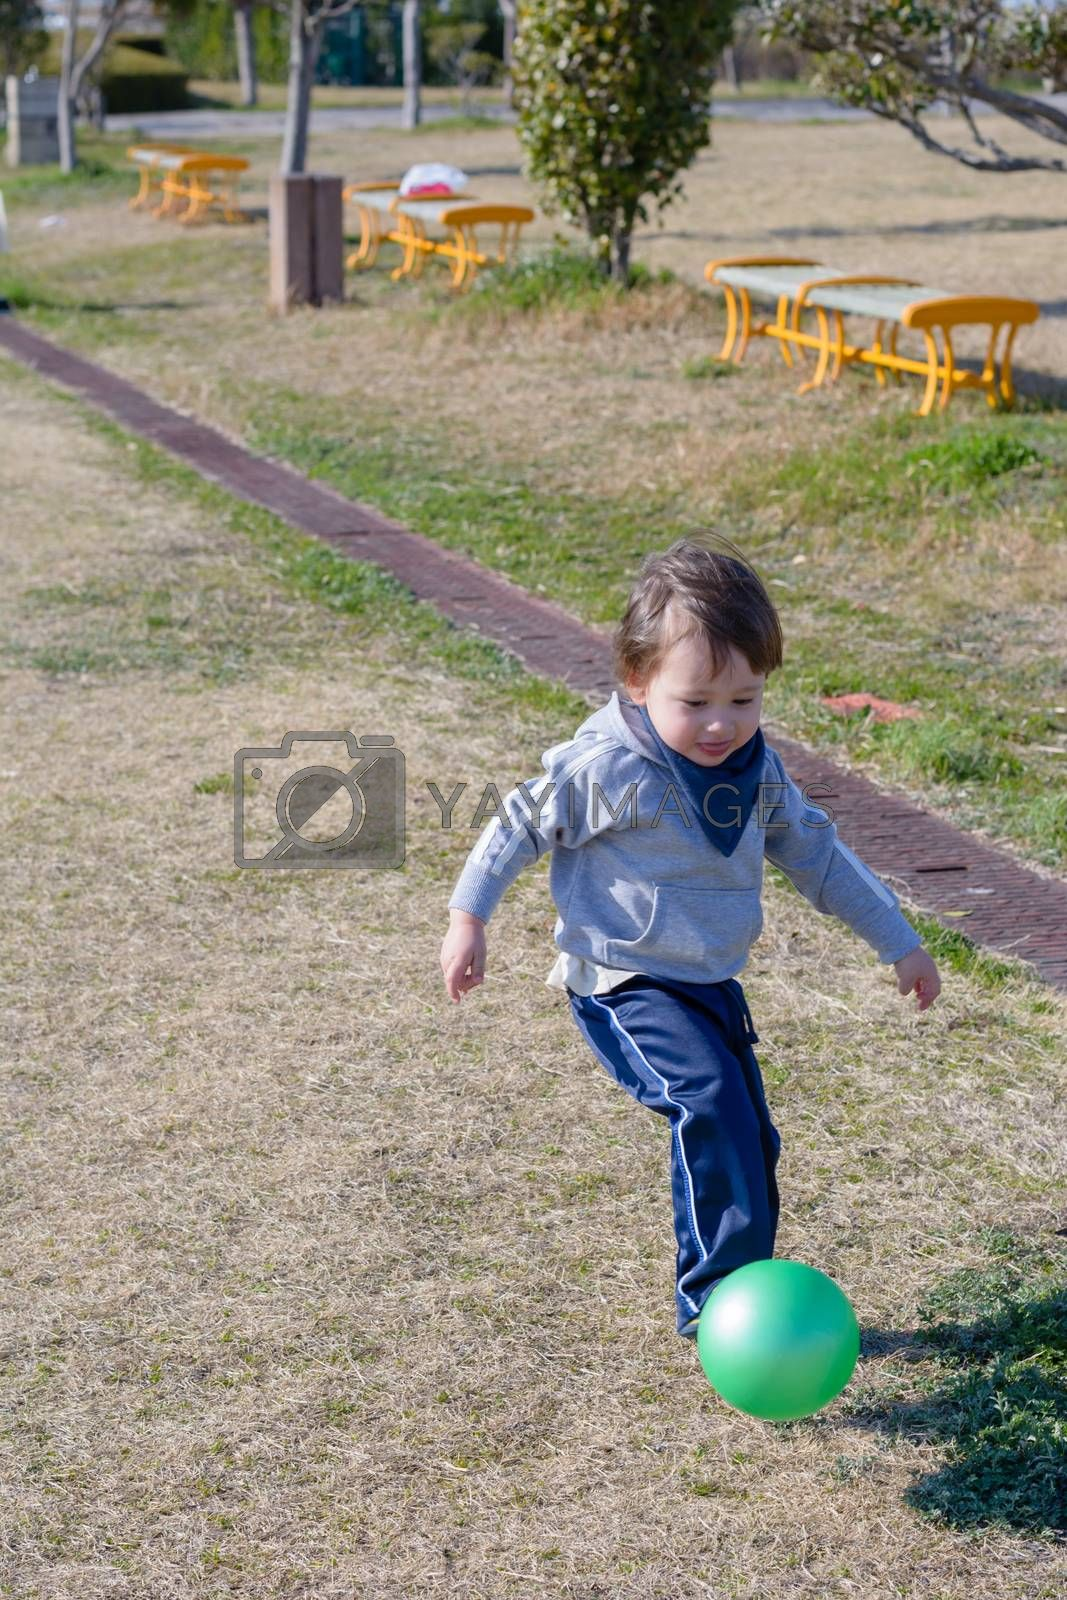 A 2 year old boy kicking a ball in a park.